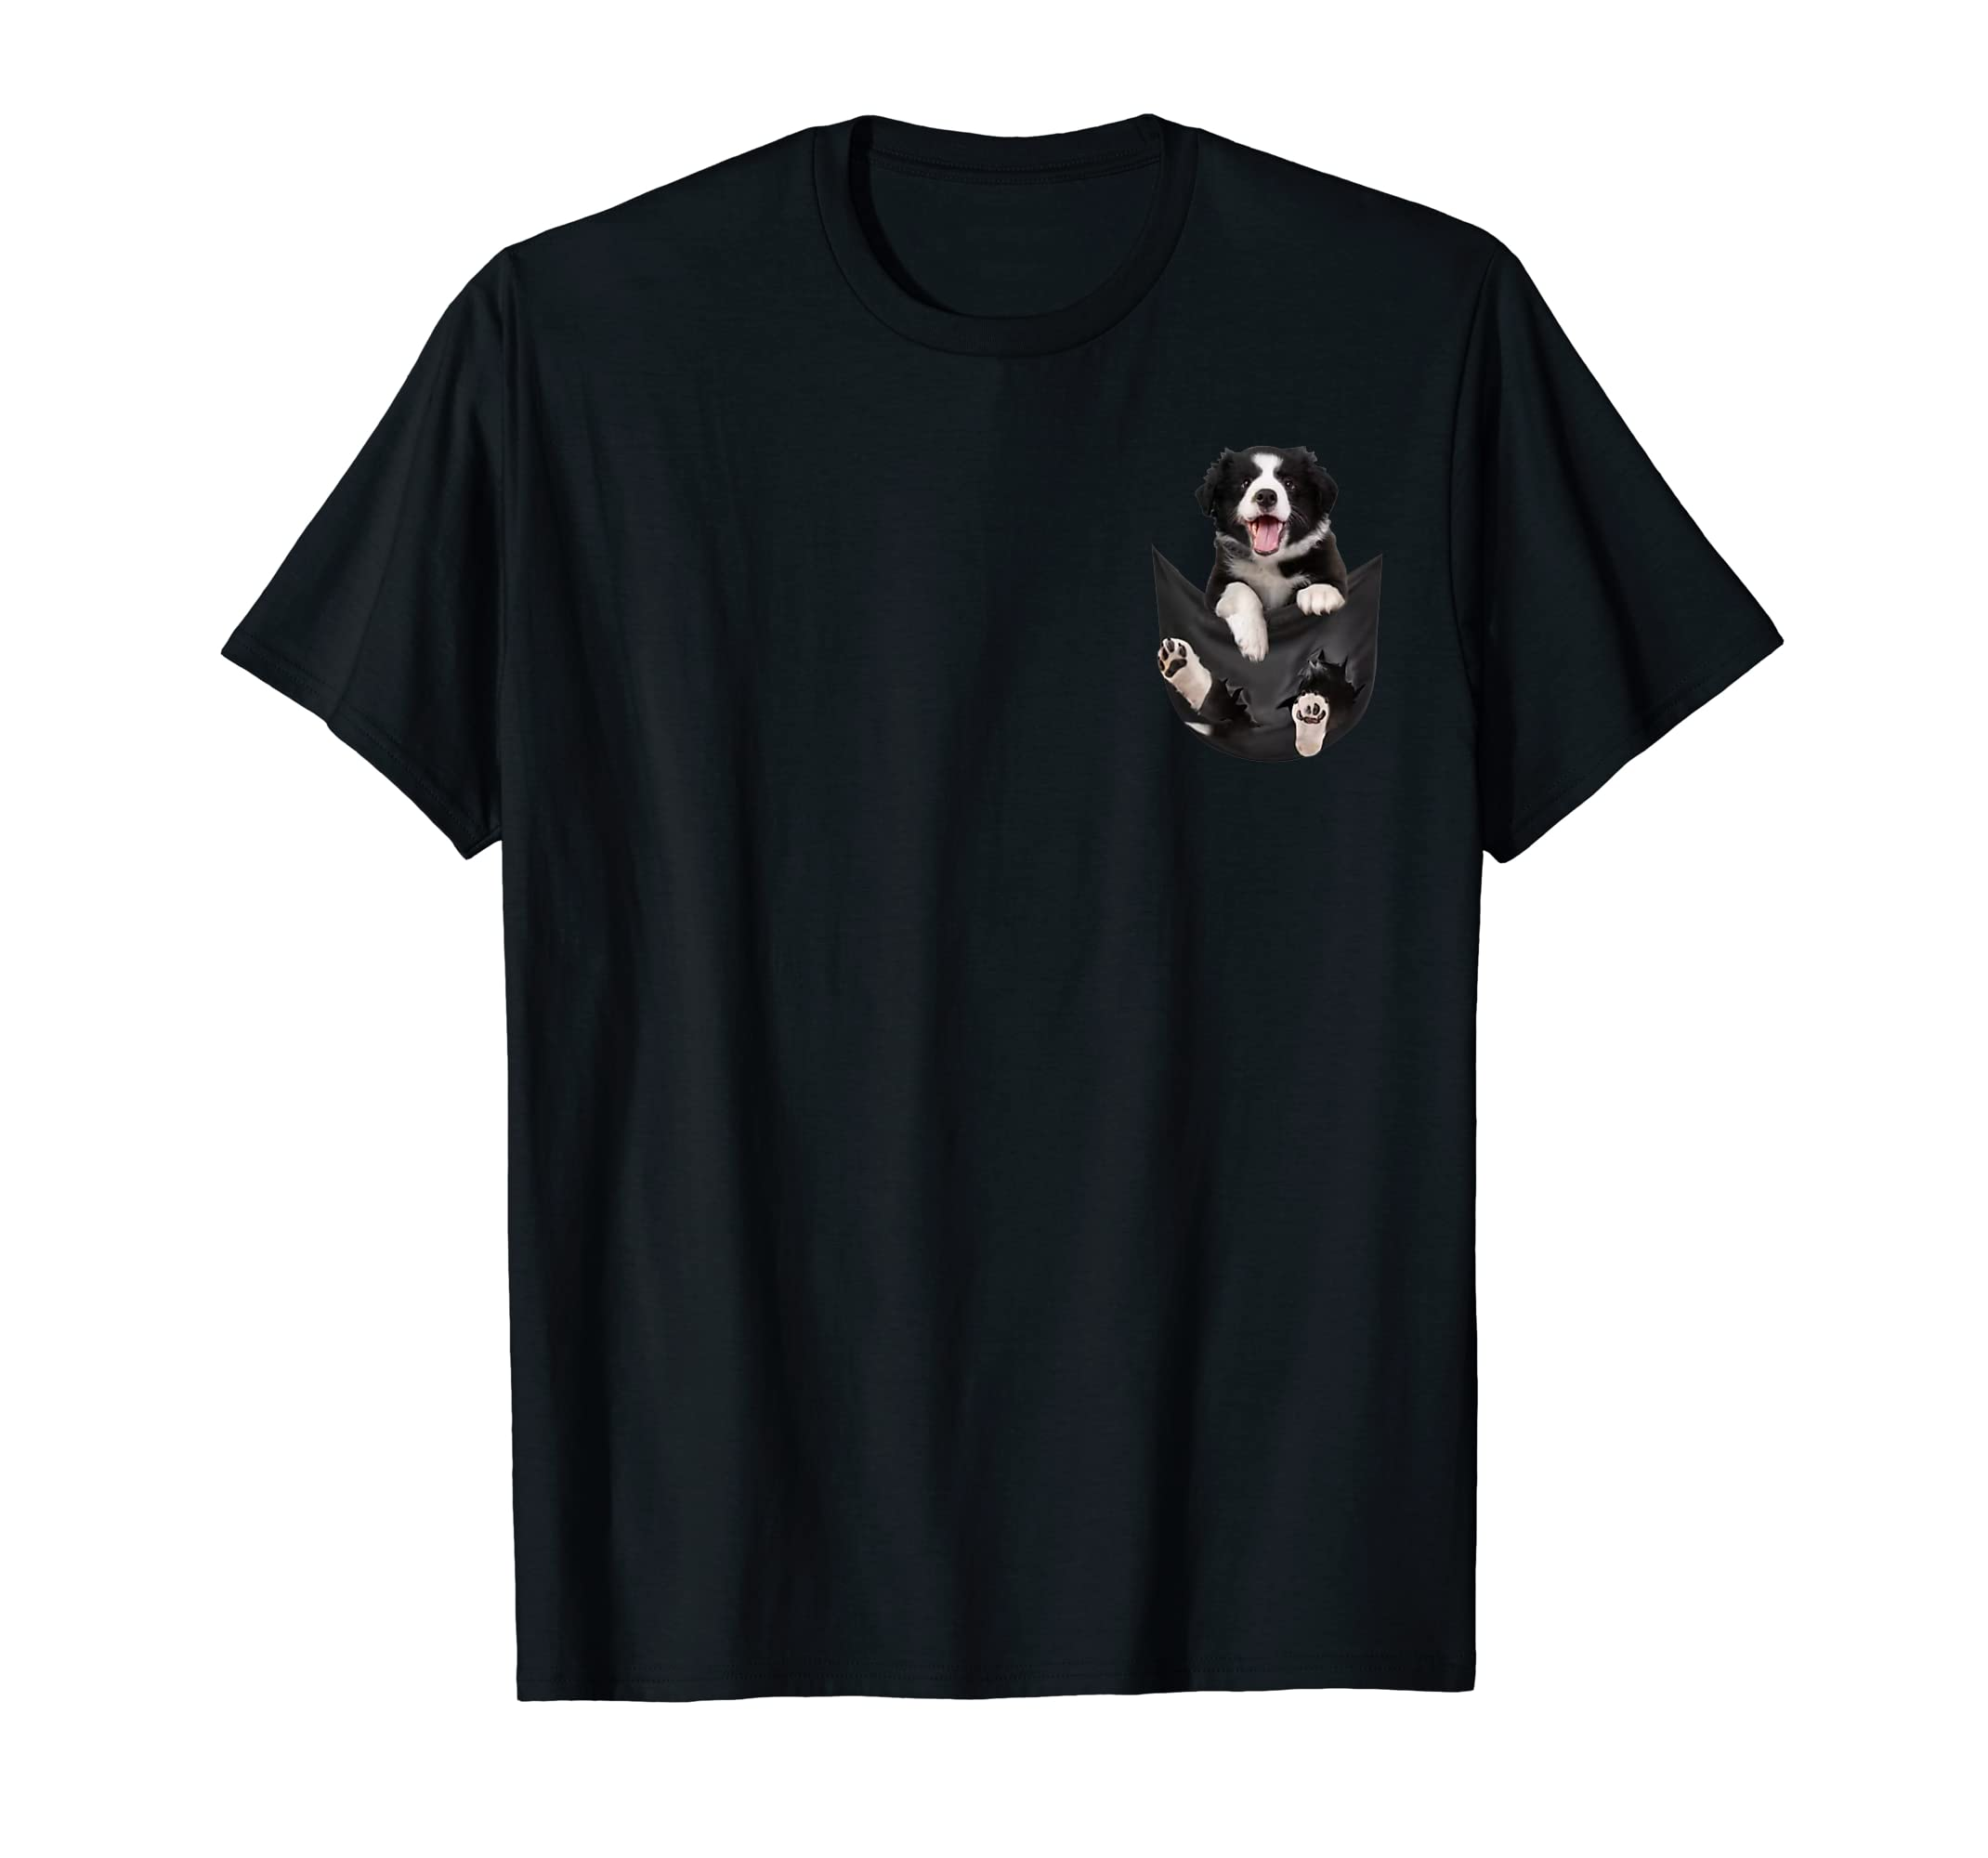 Gift dog funny cute shirt - Border Collie in pocket shirt T-Shirt-Men's T-Shirt-Black